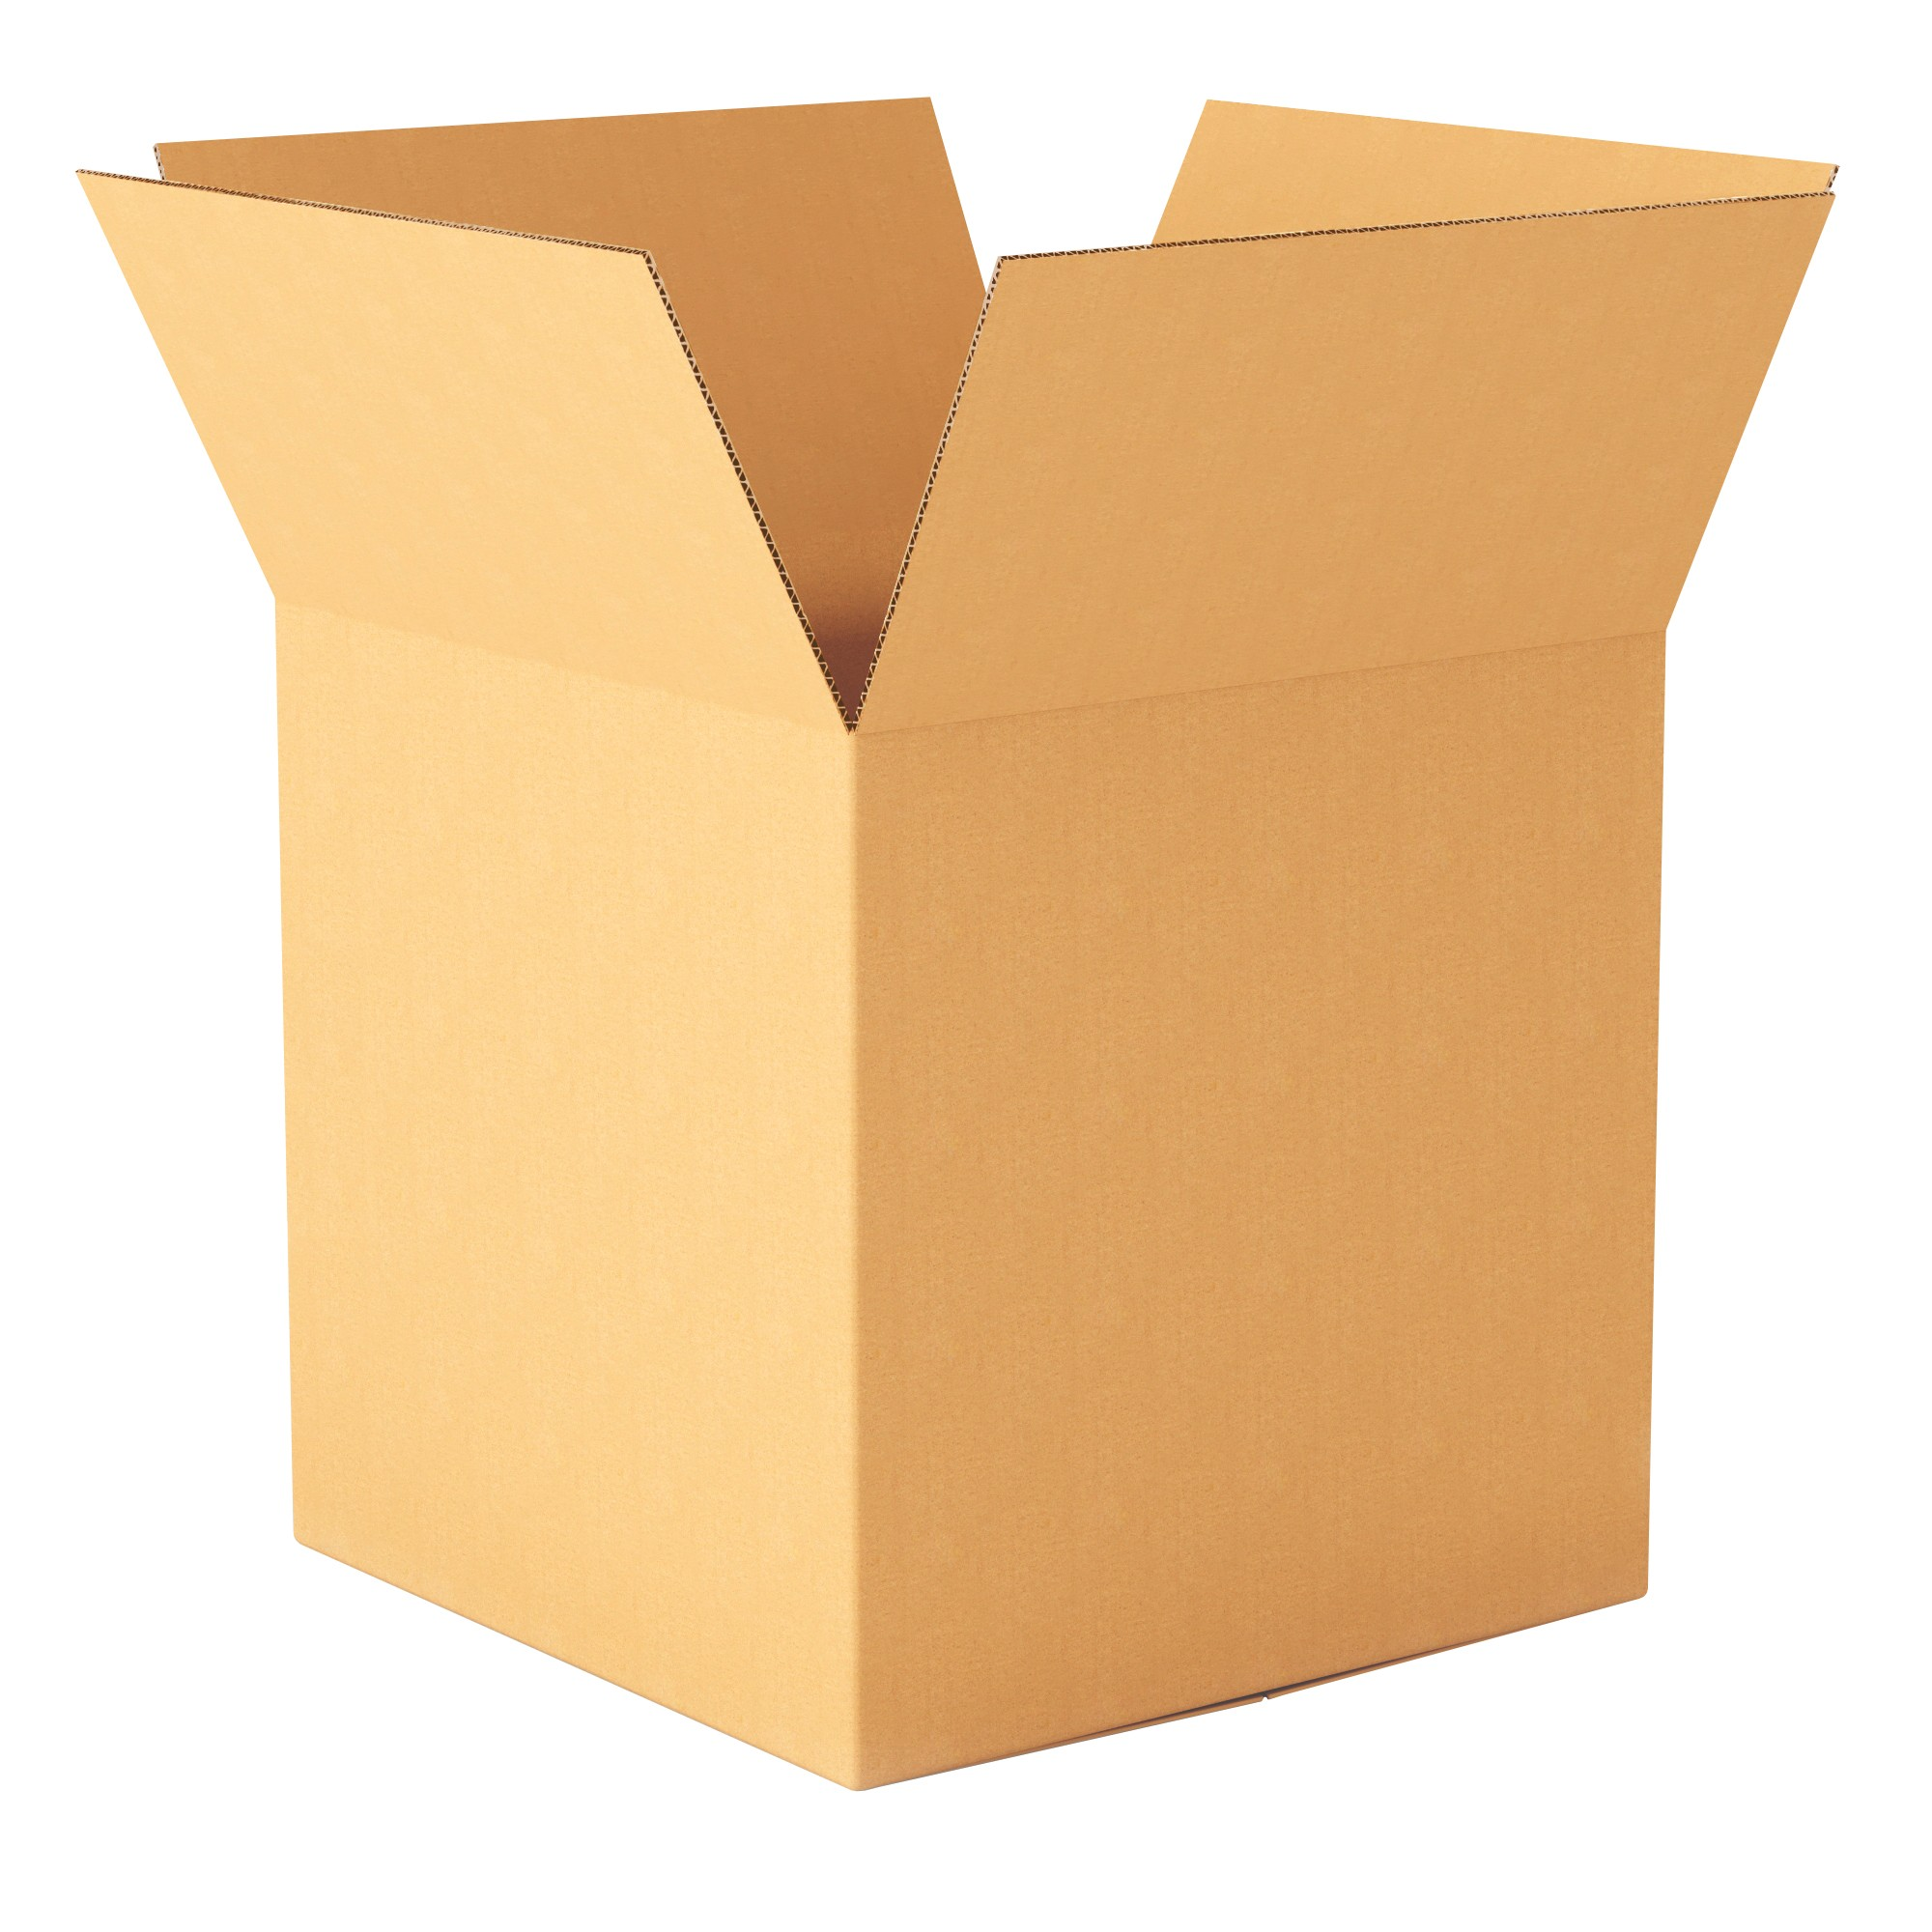 """TOTALPACK® 25 x 25 x 25"""" Single Wall Corrugated Boxes 15 Units"""